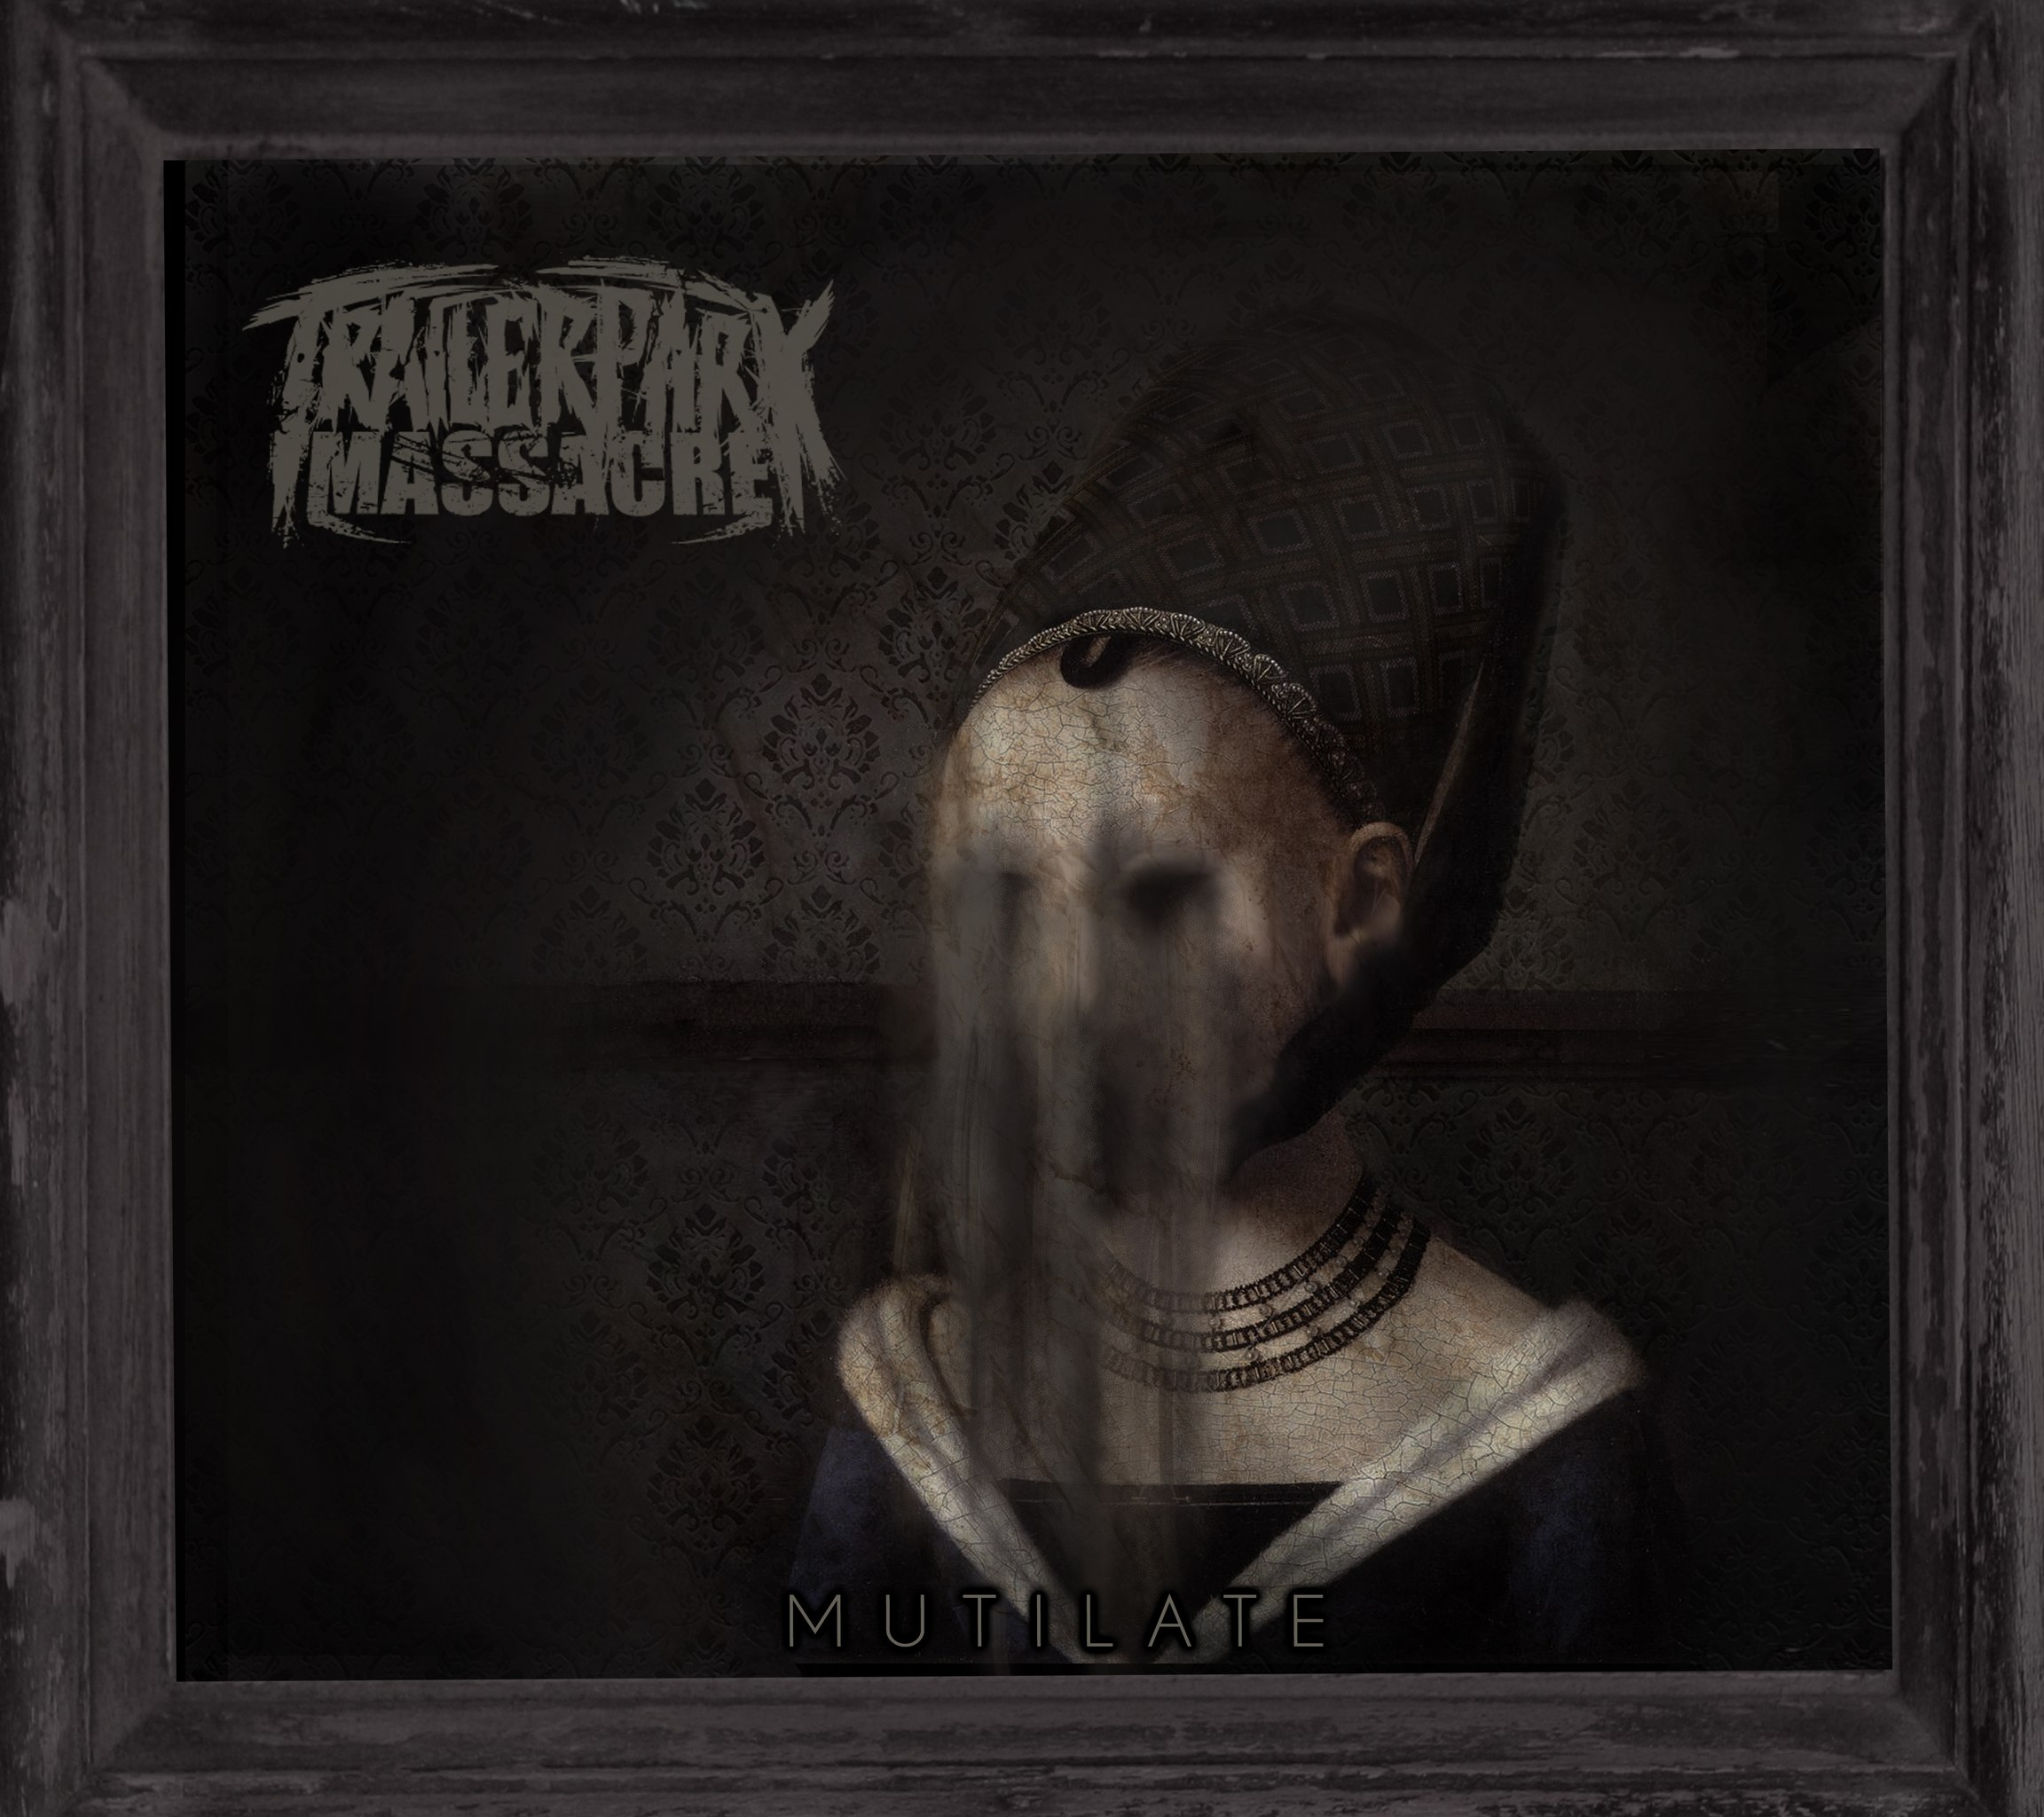 Trailer Park Massacre - Mutilate [EP] (2012)